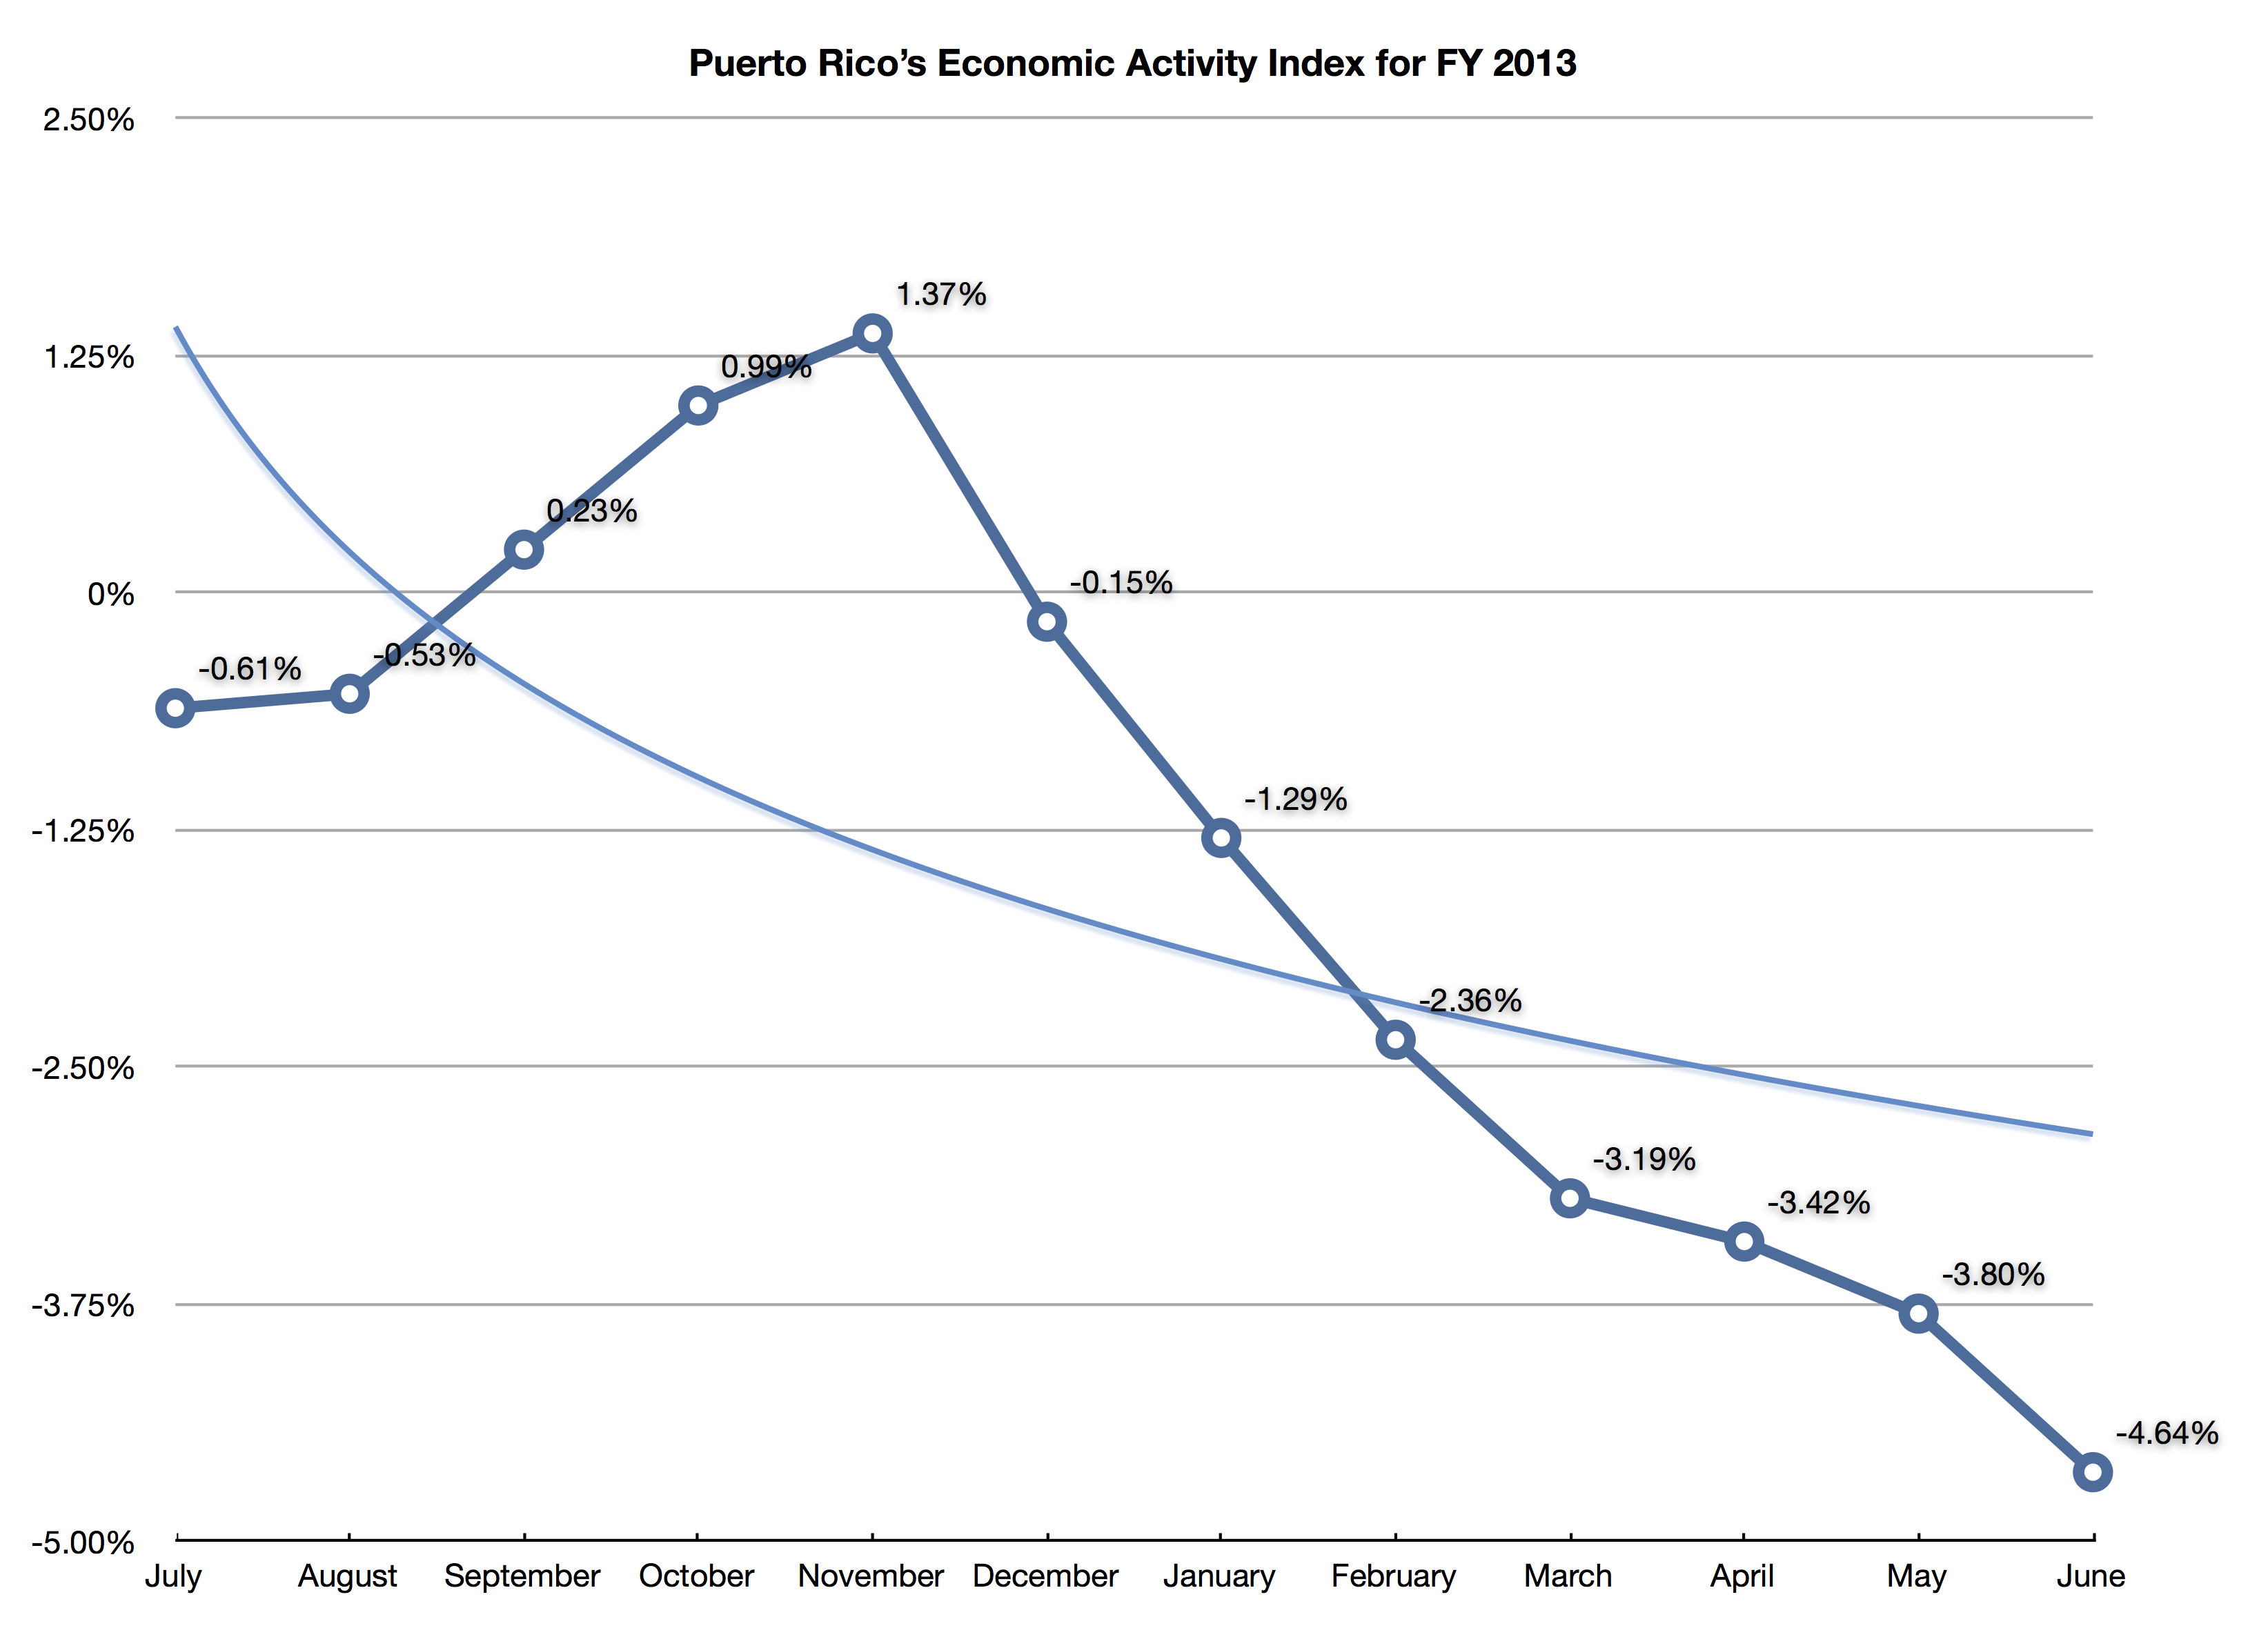 analysis of the economy of puerto rico since the 1940s Puerto rico, an island situated between the caribbean sea and the atlantic ocean, lies just east of the dominican republic puerto rico's colonial history with spain resulted in a racially mixed population (spanish, african, and indigenous taino), 85 percent of which is roman catholic.